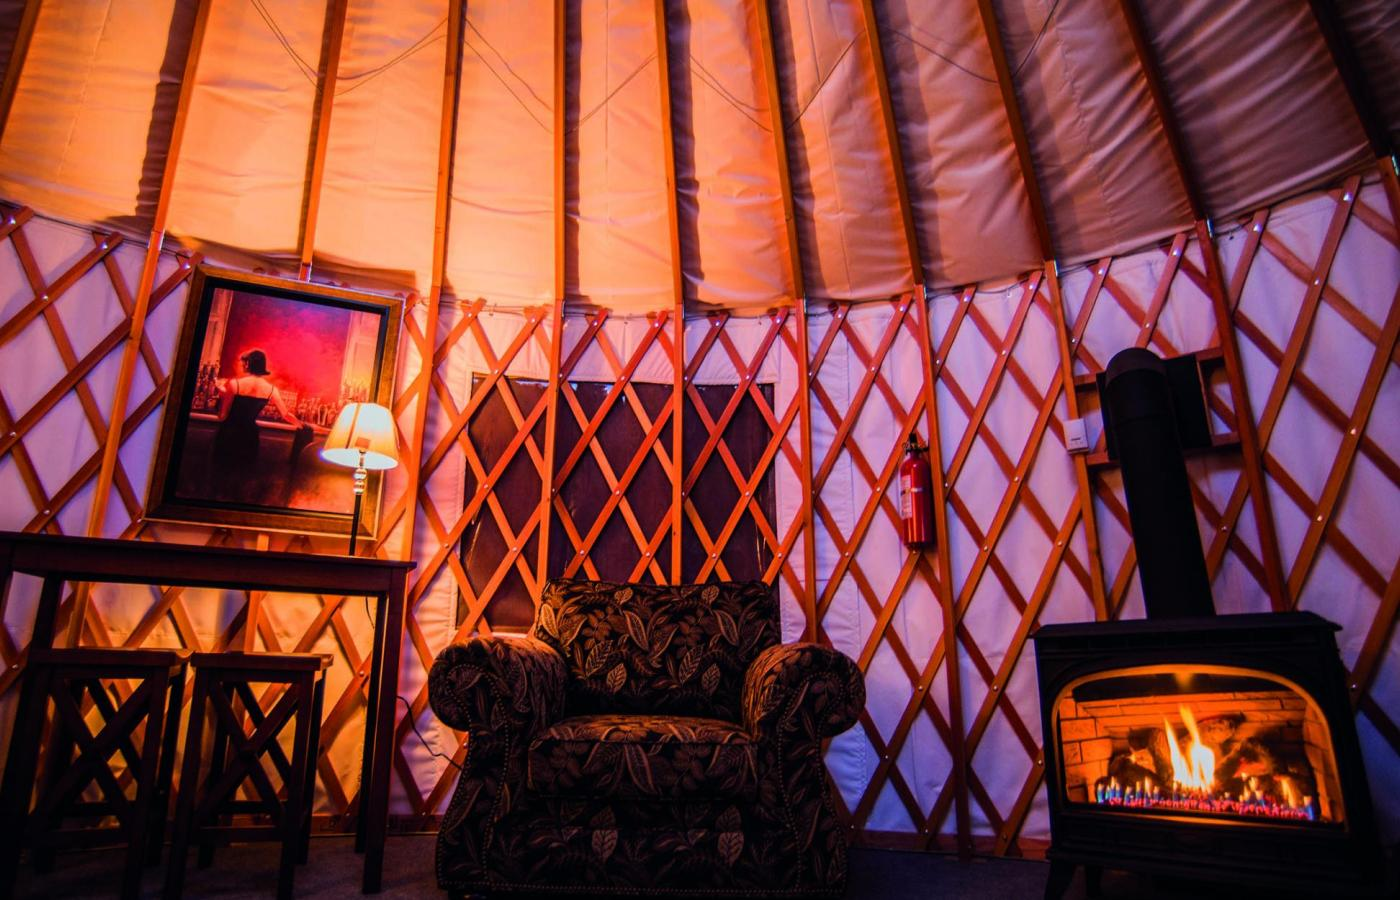 The inside of a Mongolian yurt is illuminated with a warm glow